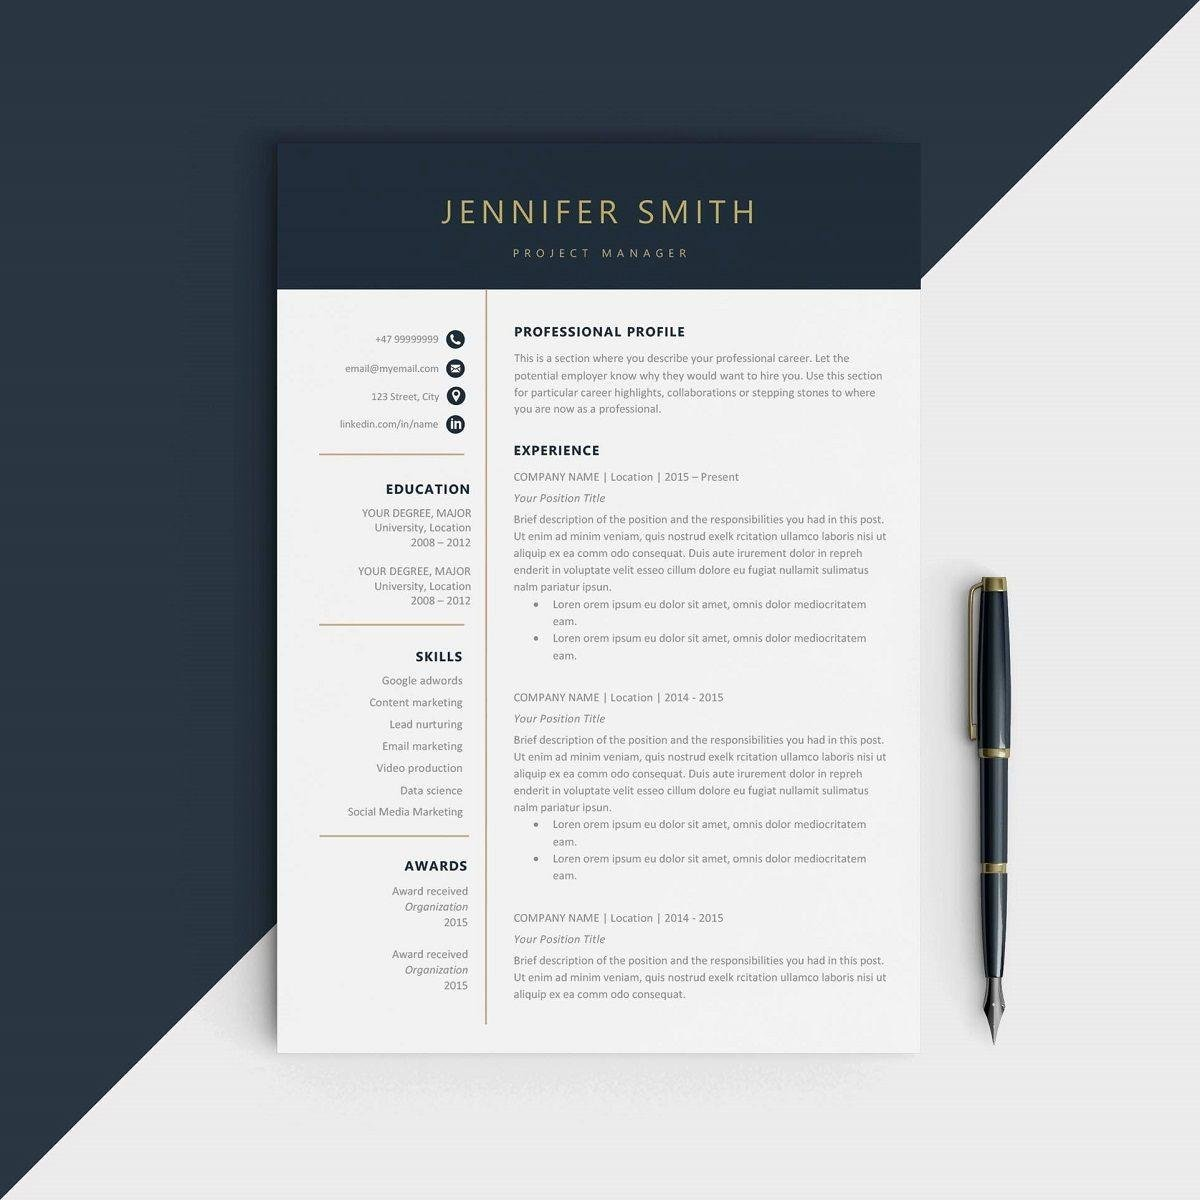 Modern resume templates 18 examples a complete guide executive resume template altavistaventures Image collections